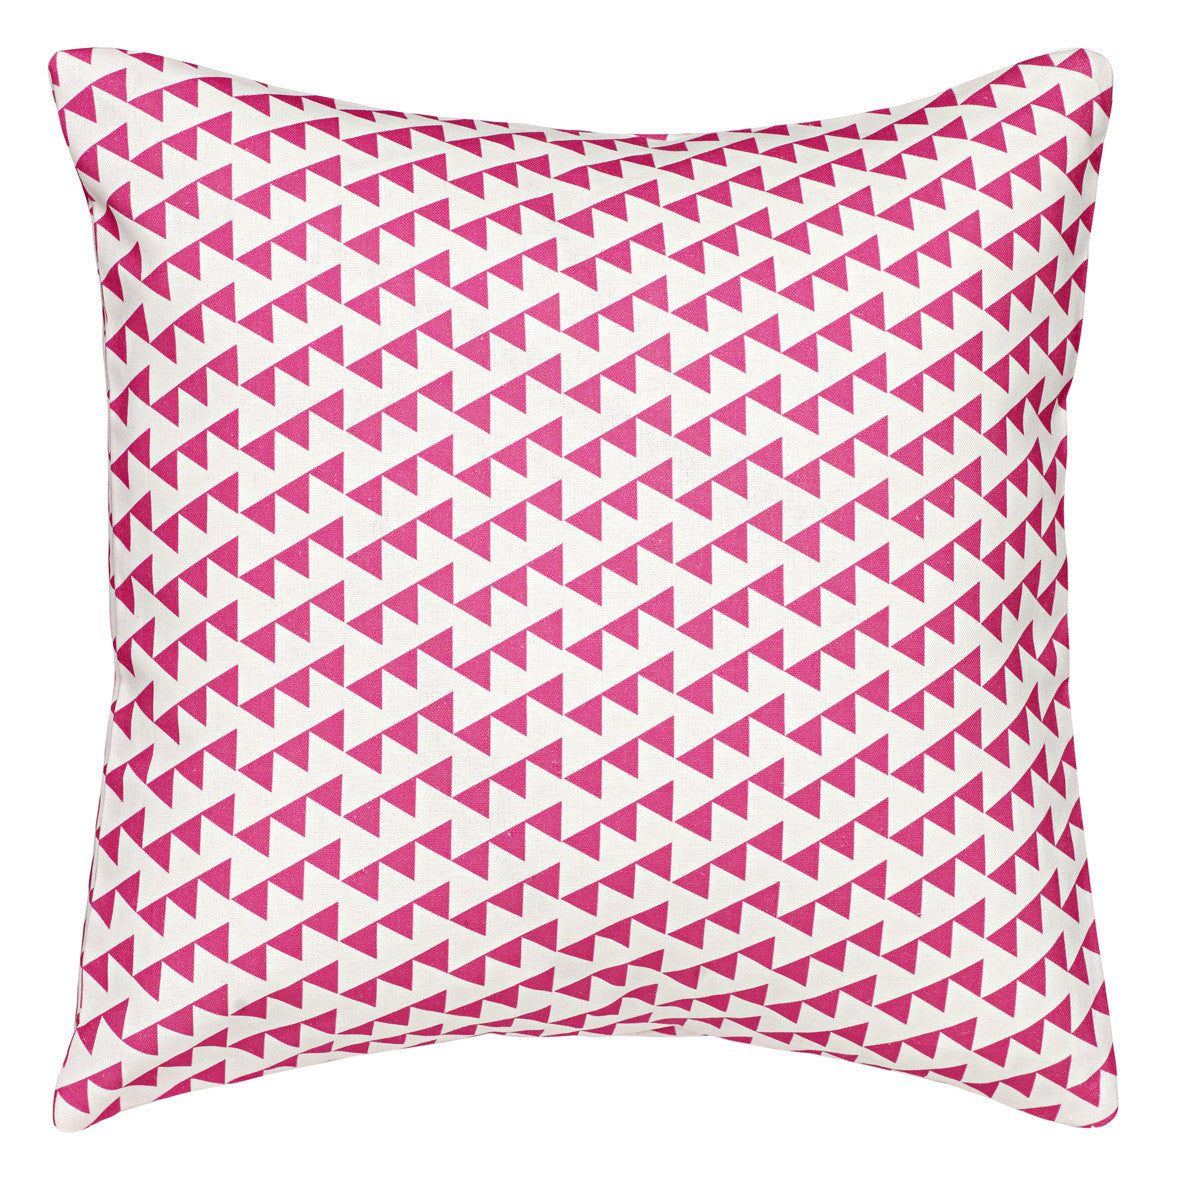 Bunting Geometric Pattern Cotton Linen Pillow in Fuchsia Pink 18x18""